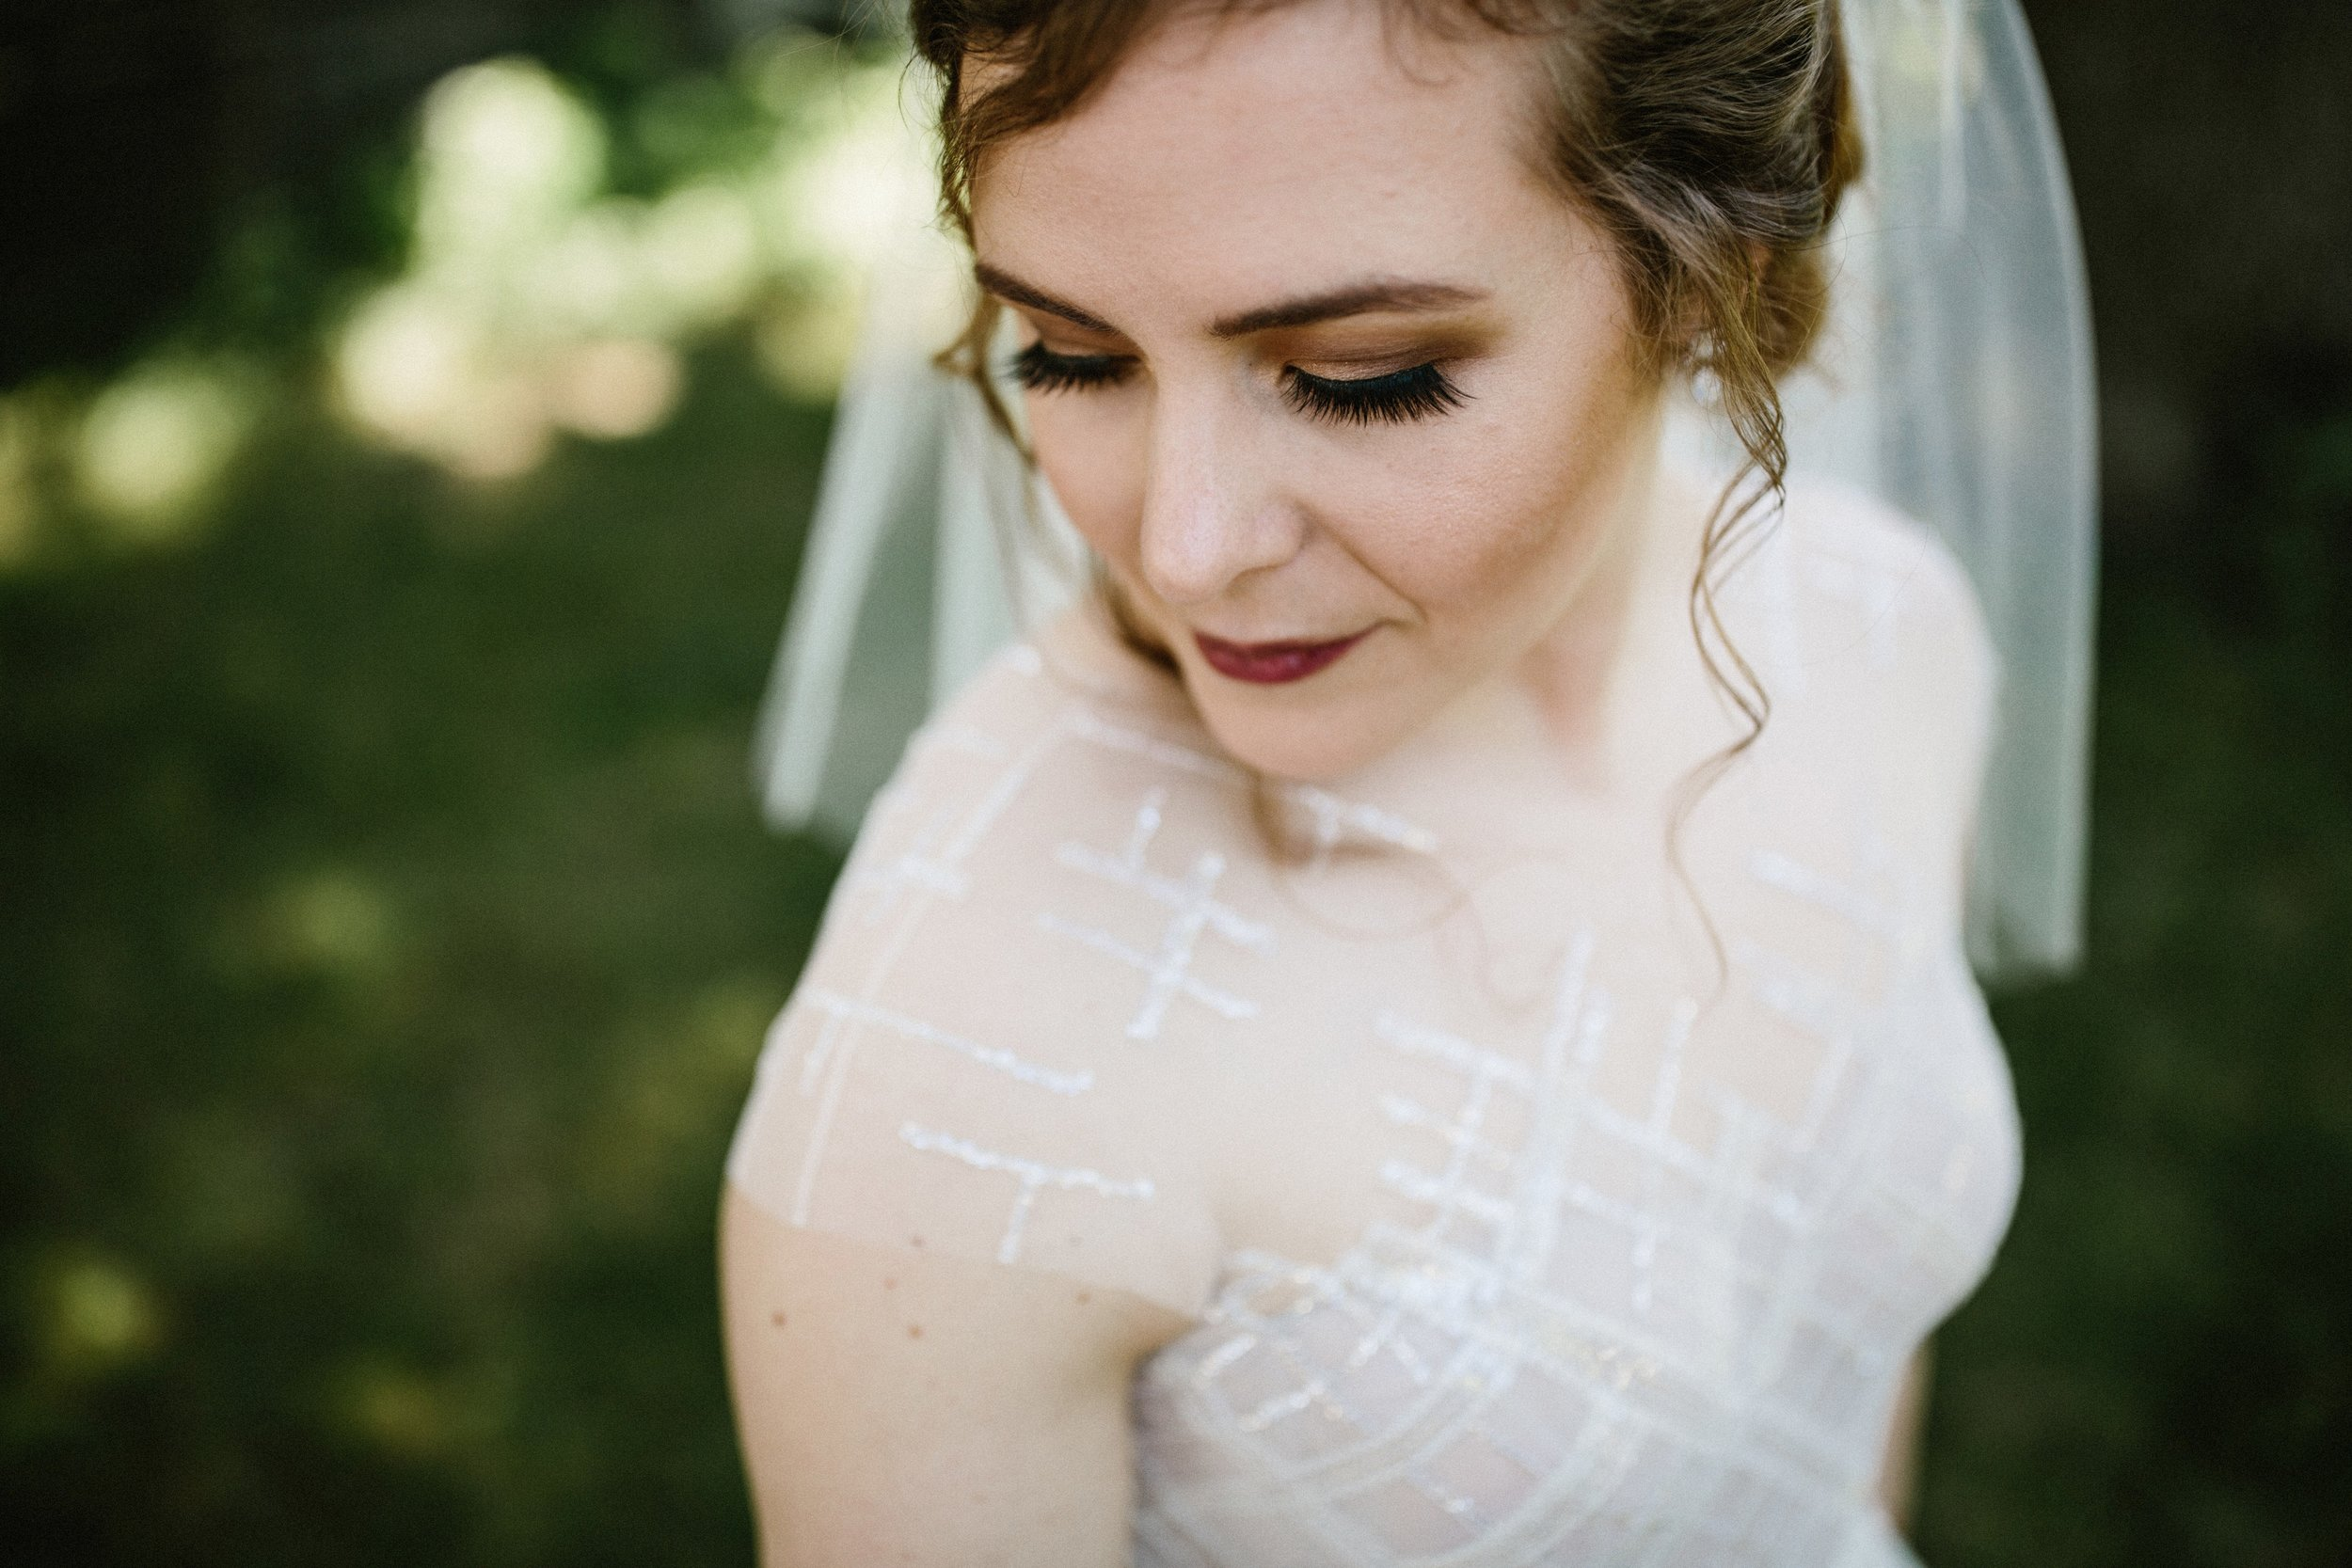 photography: Aaron & Whitney // hair & makeup: Hayley Jeanne